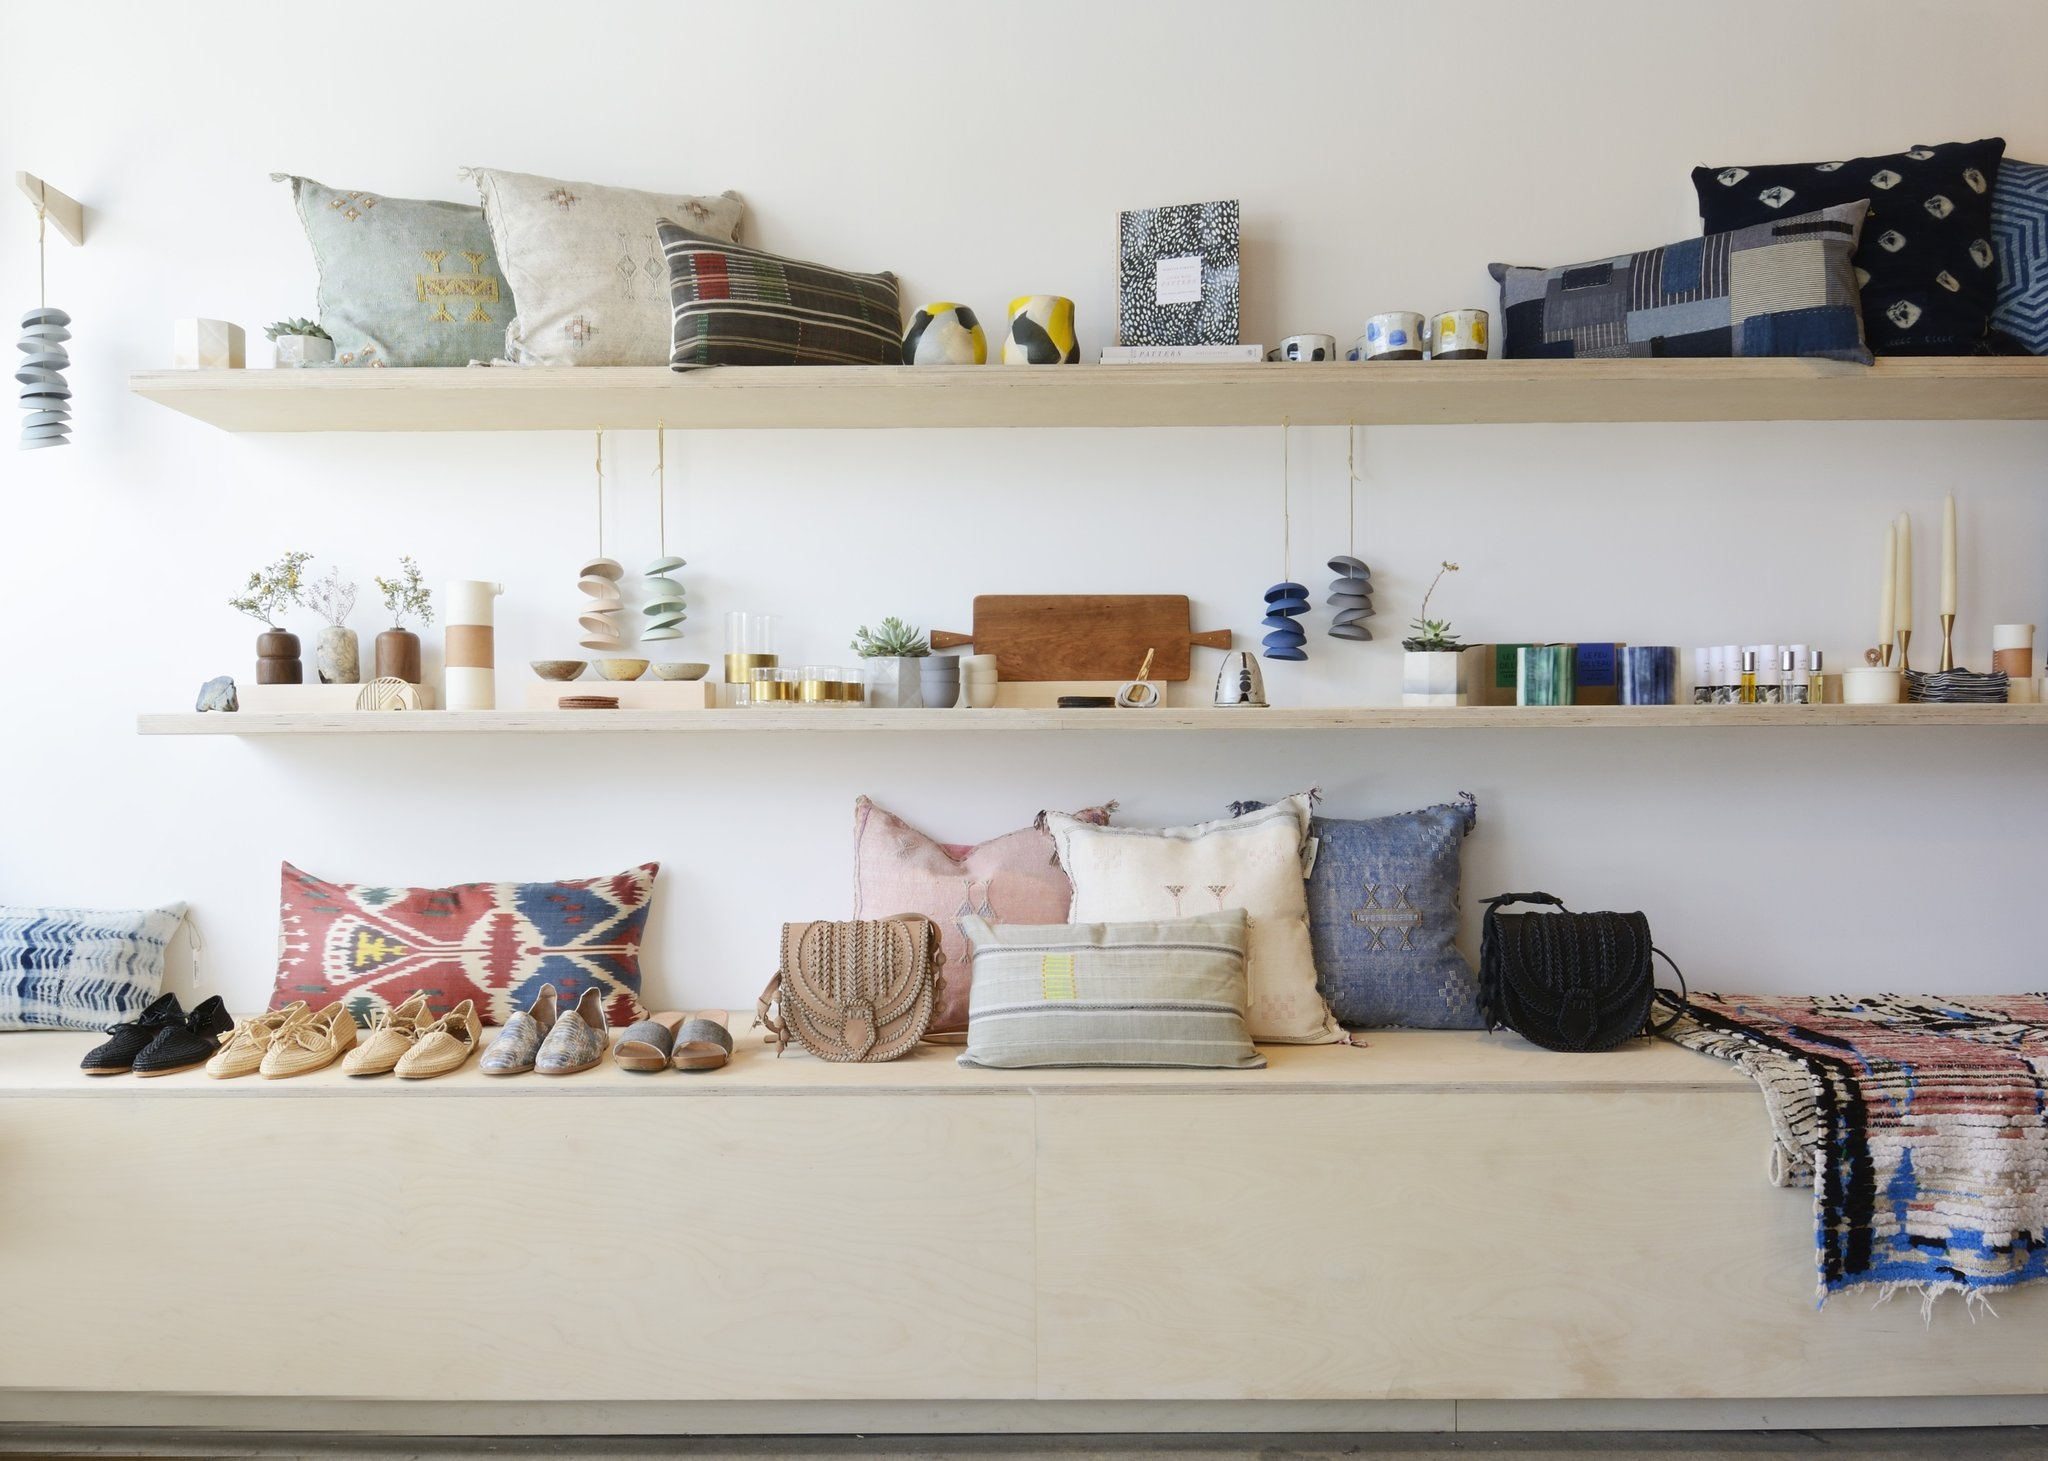 KIN AND KIND - What you'll find: accessories, textiles, and home decor from modern makers, and covet-worthy heirlooms sourced from abroad.Atwater Village: 3229 1/2 Glendale Blvd, Los Angeles, CA 90039